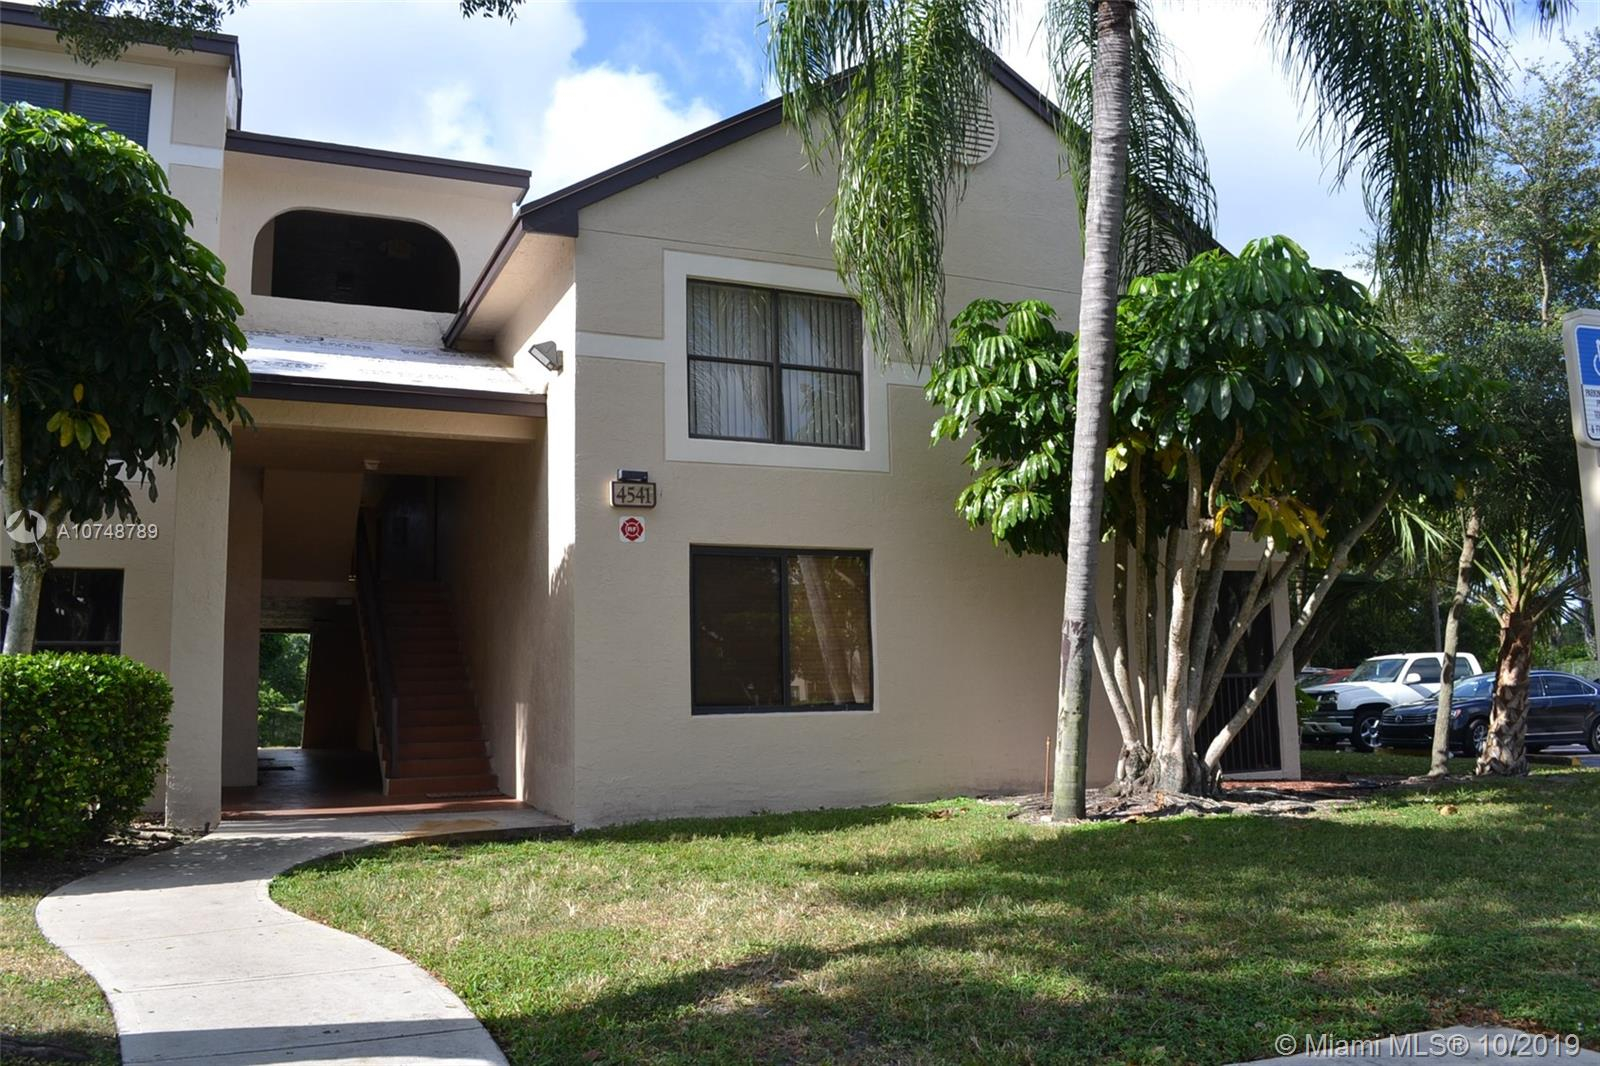 4541 W Mcnab Rd #22 For Sale A10748789, FL